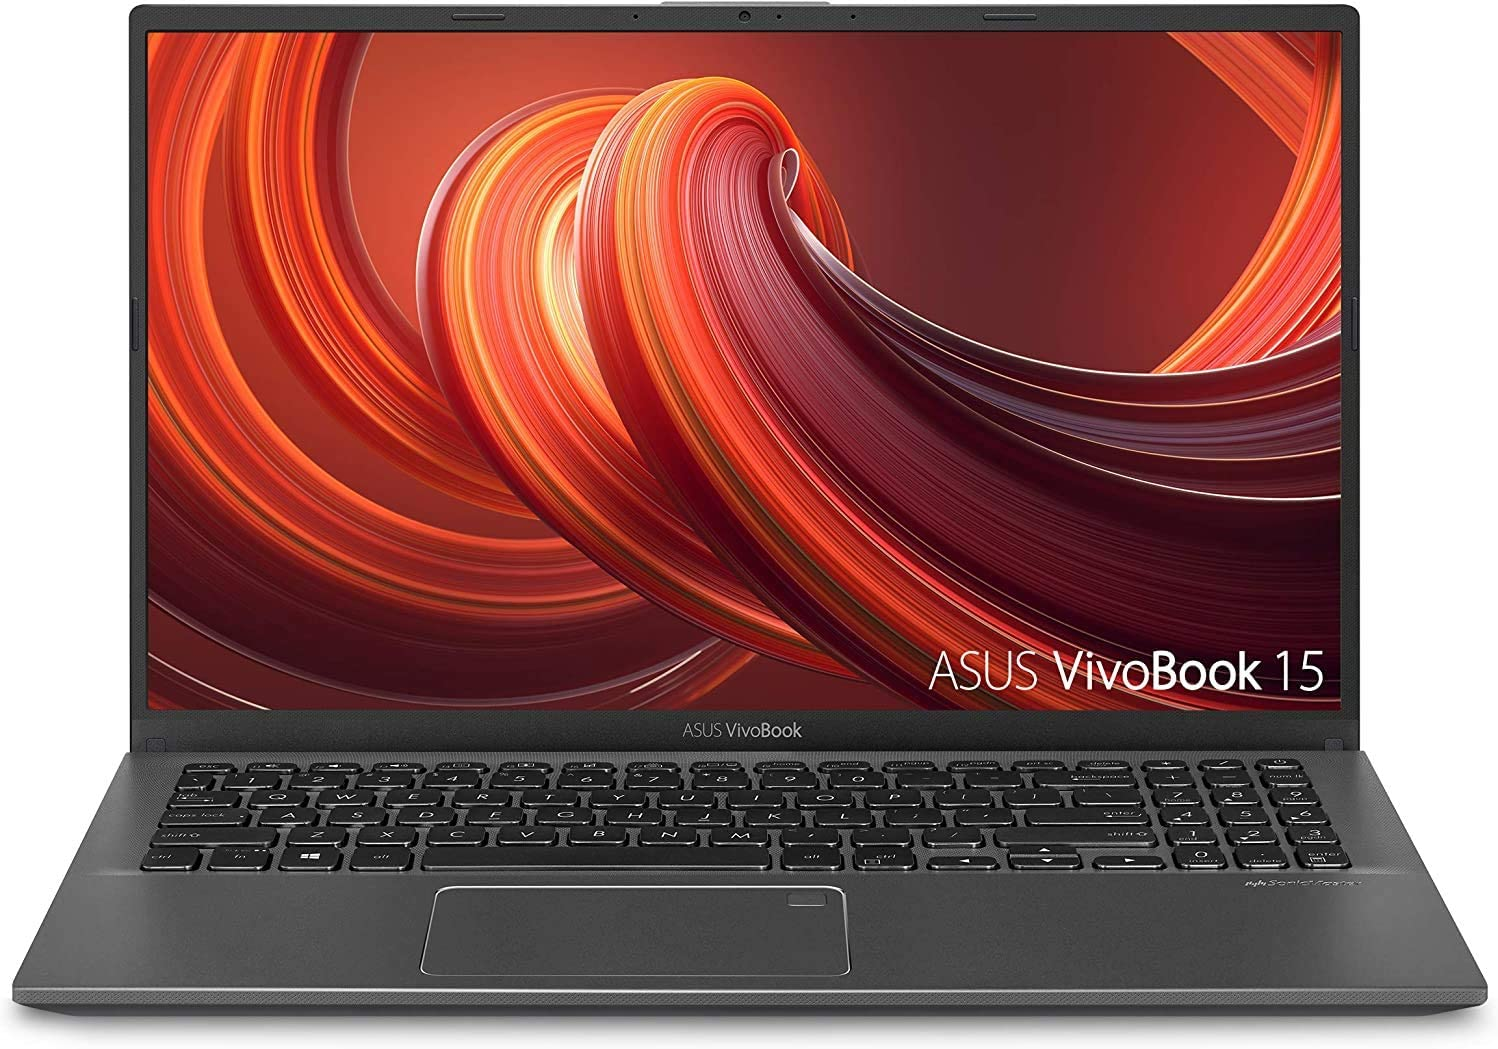 "ASUS VivoBook 15 15.6"" FHD Laptop Computer, AMD Ryzen 3 3200U (Beats i5-7200U) Up to 3.5GHz Processor, 8GB DDR4, 256GB SSD, AC WiFi, Windows 10 + iPuzzle Mousepad"